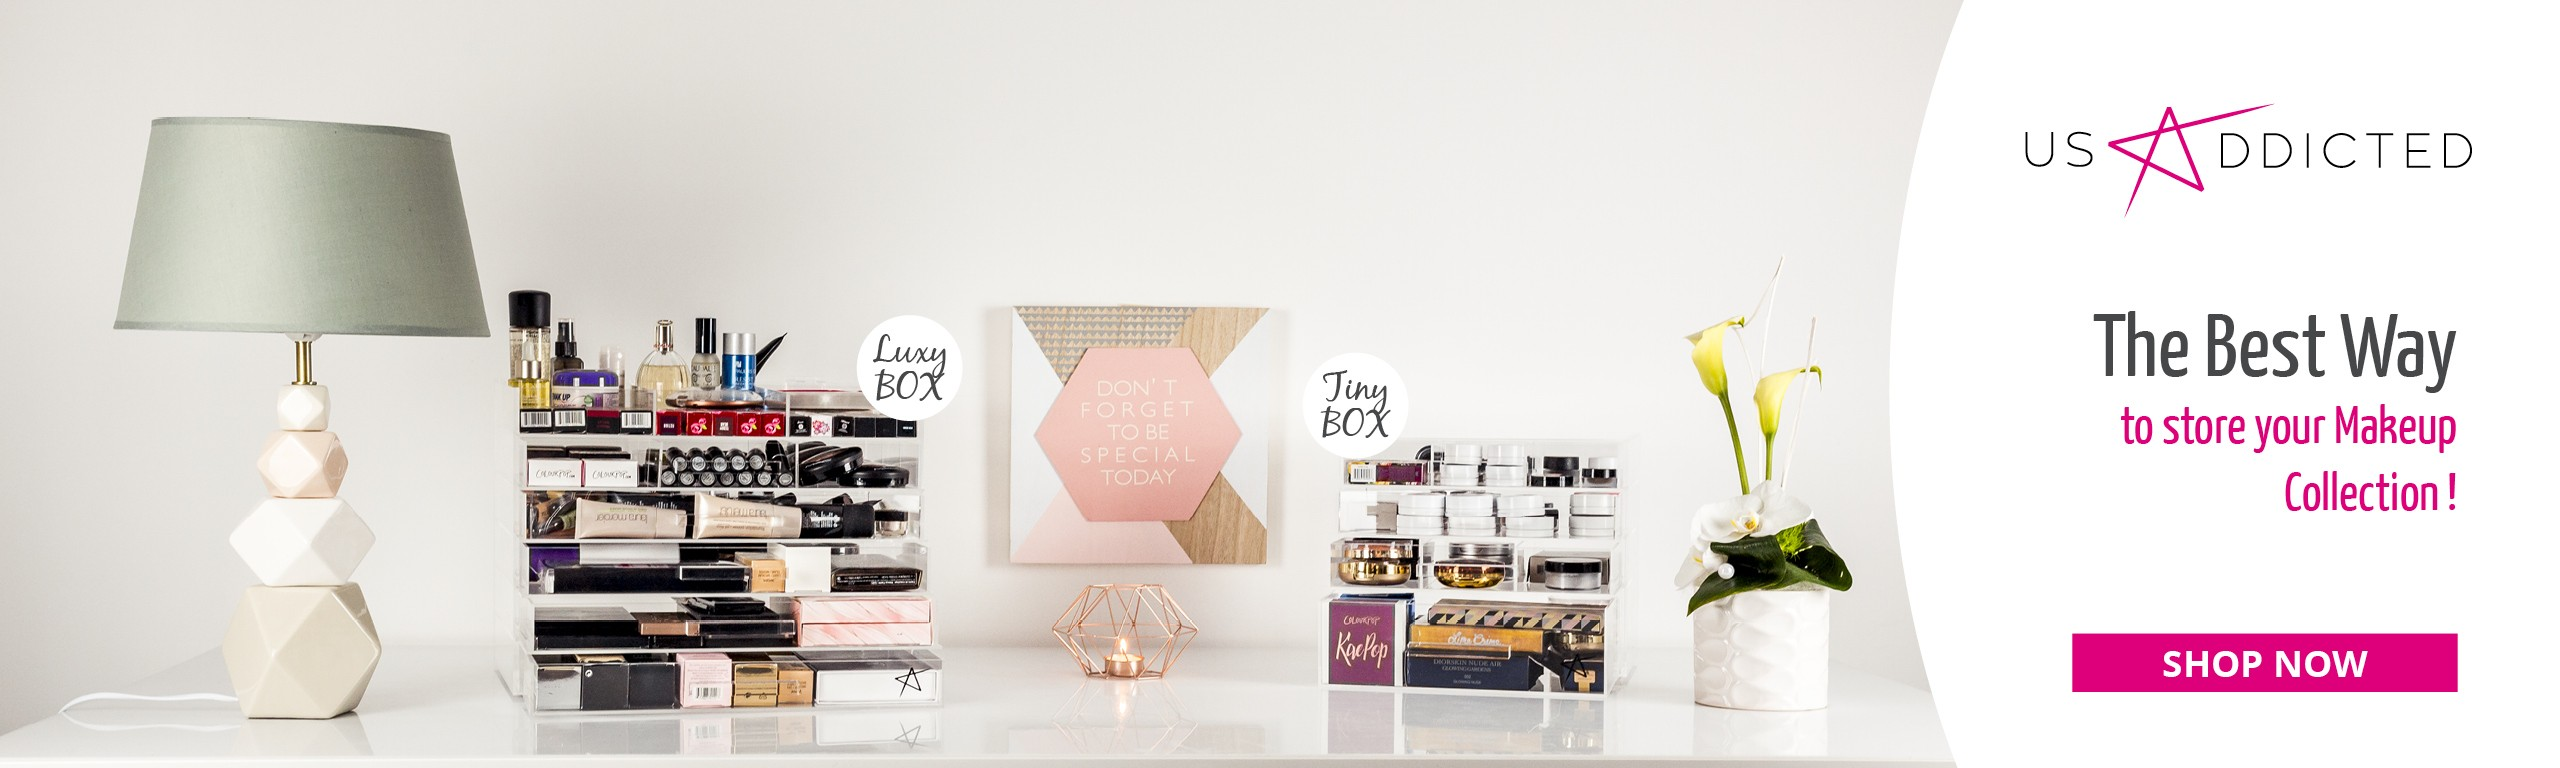 The best Way to store your makeup collection